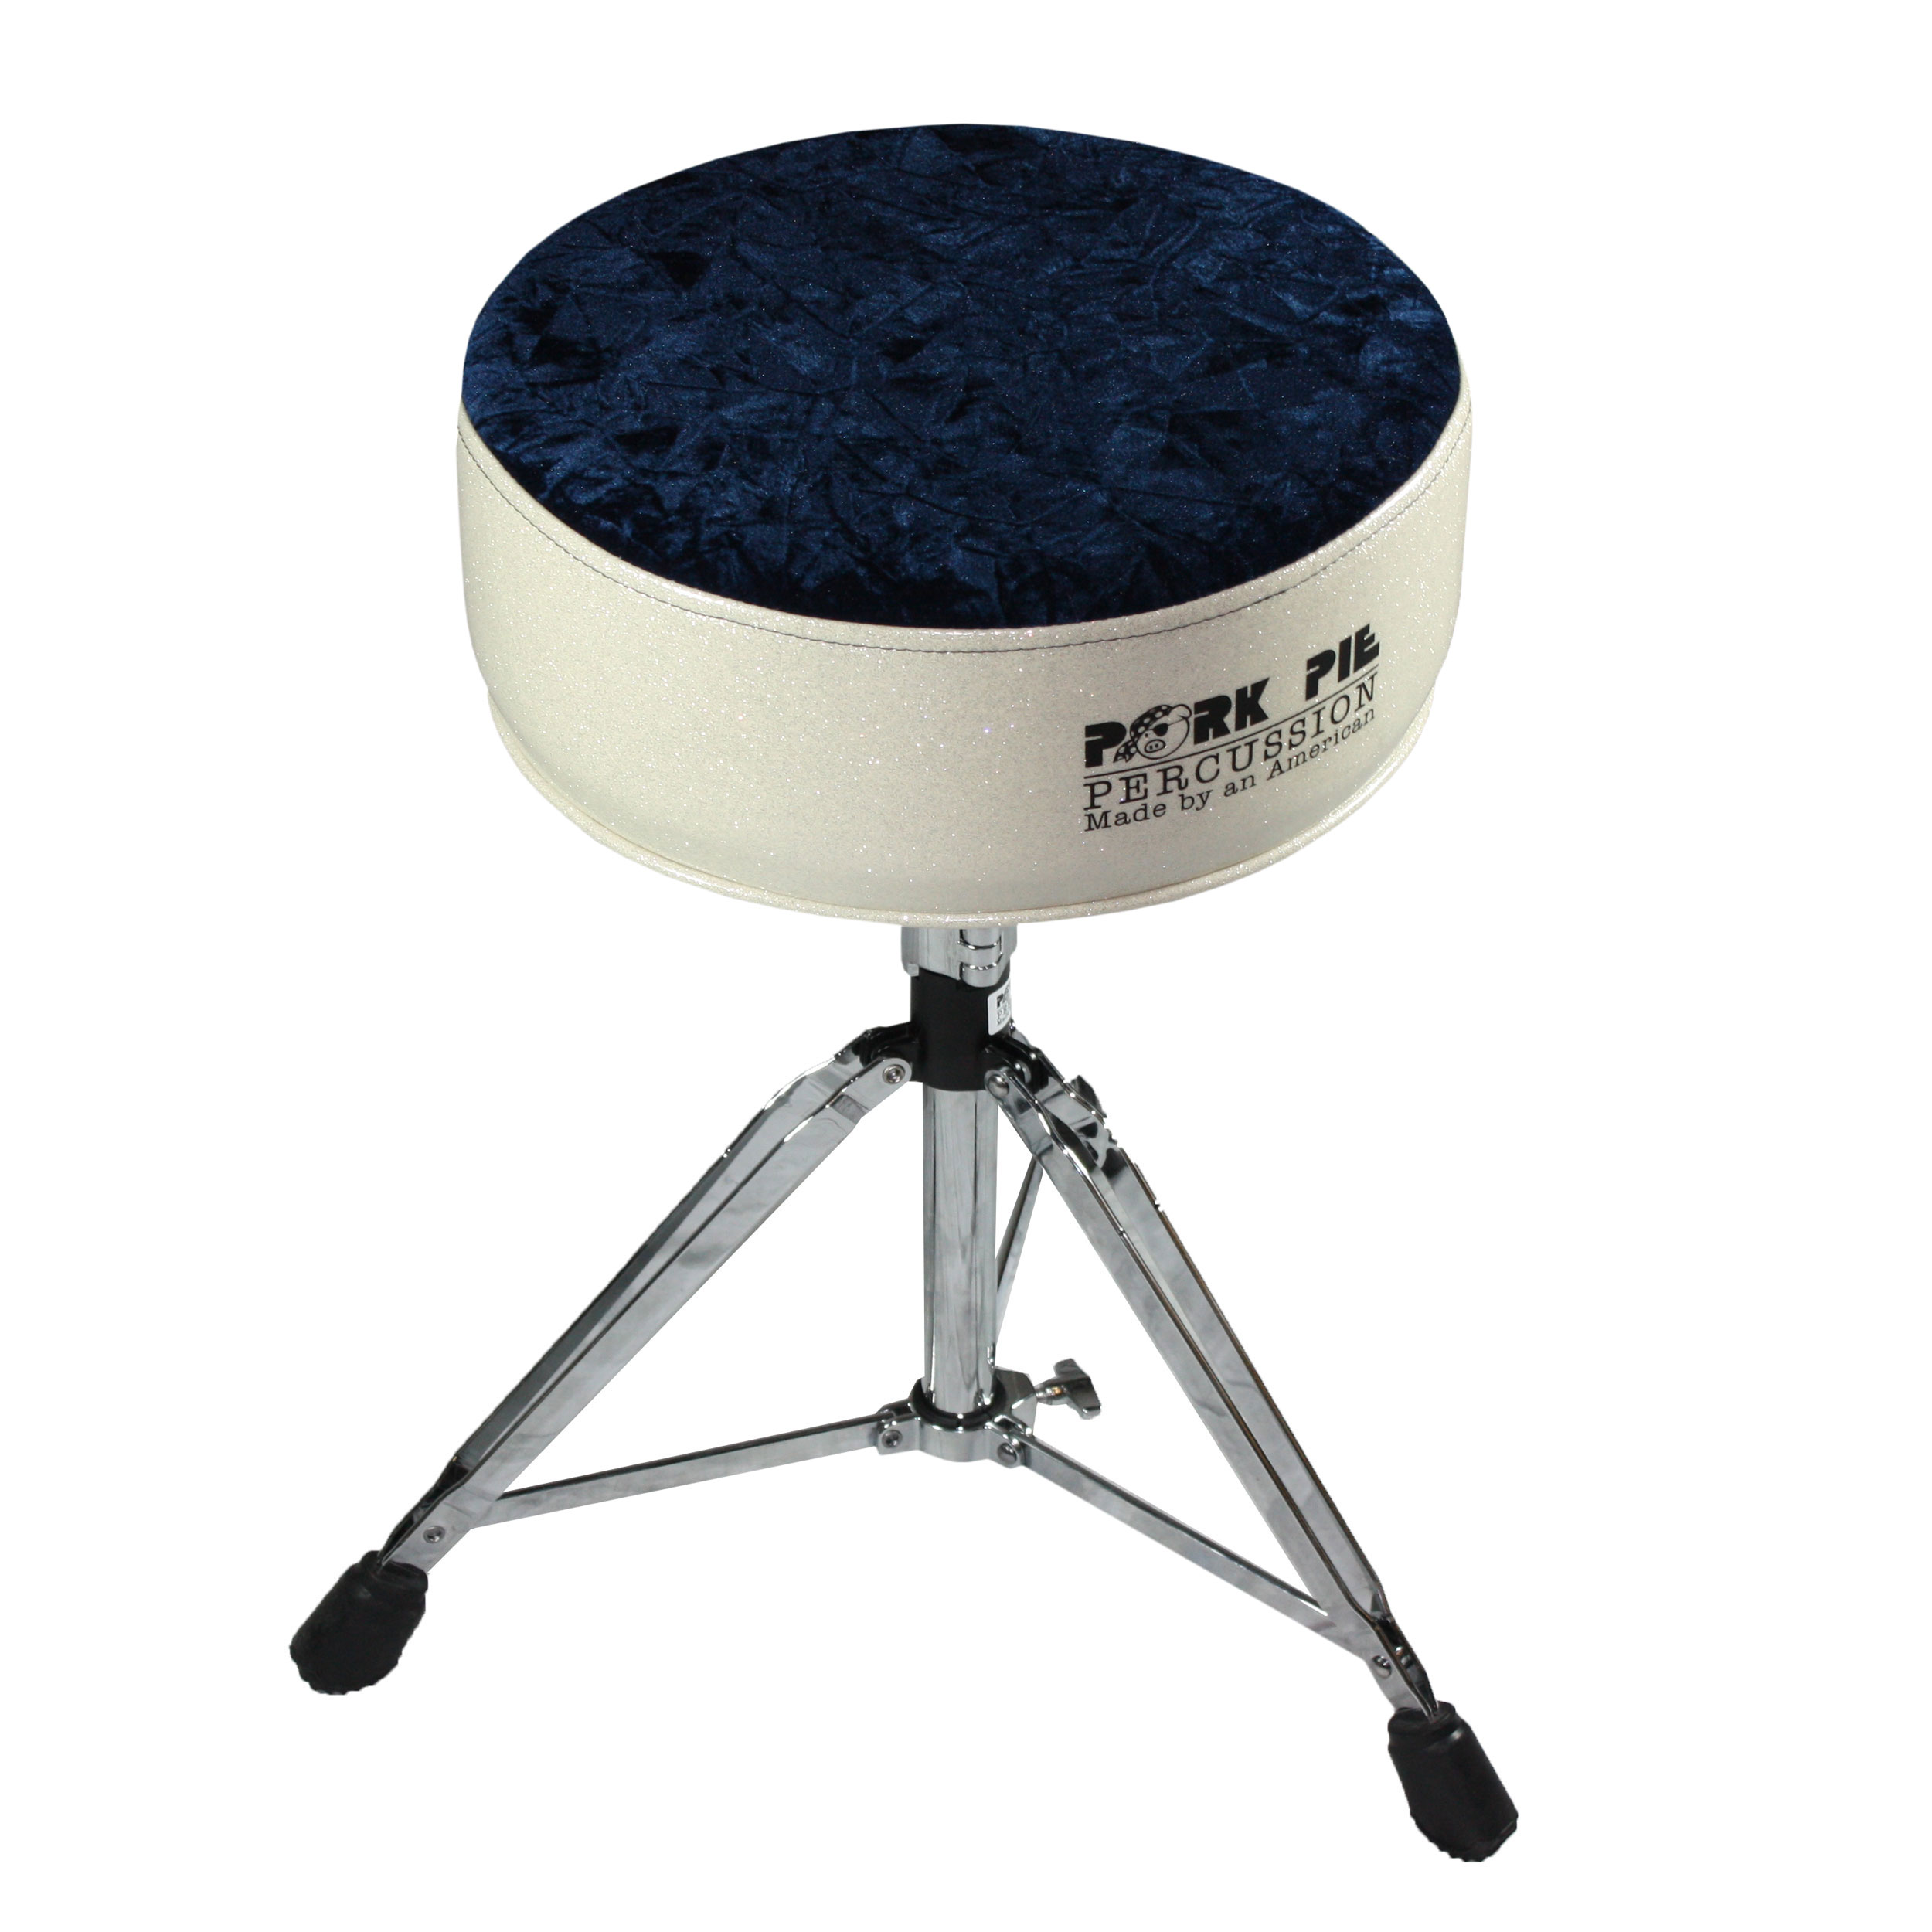 Pork Pie Round Top Silver/Navy Crush Drum Throne